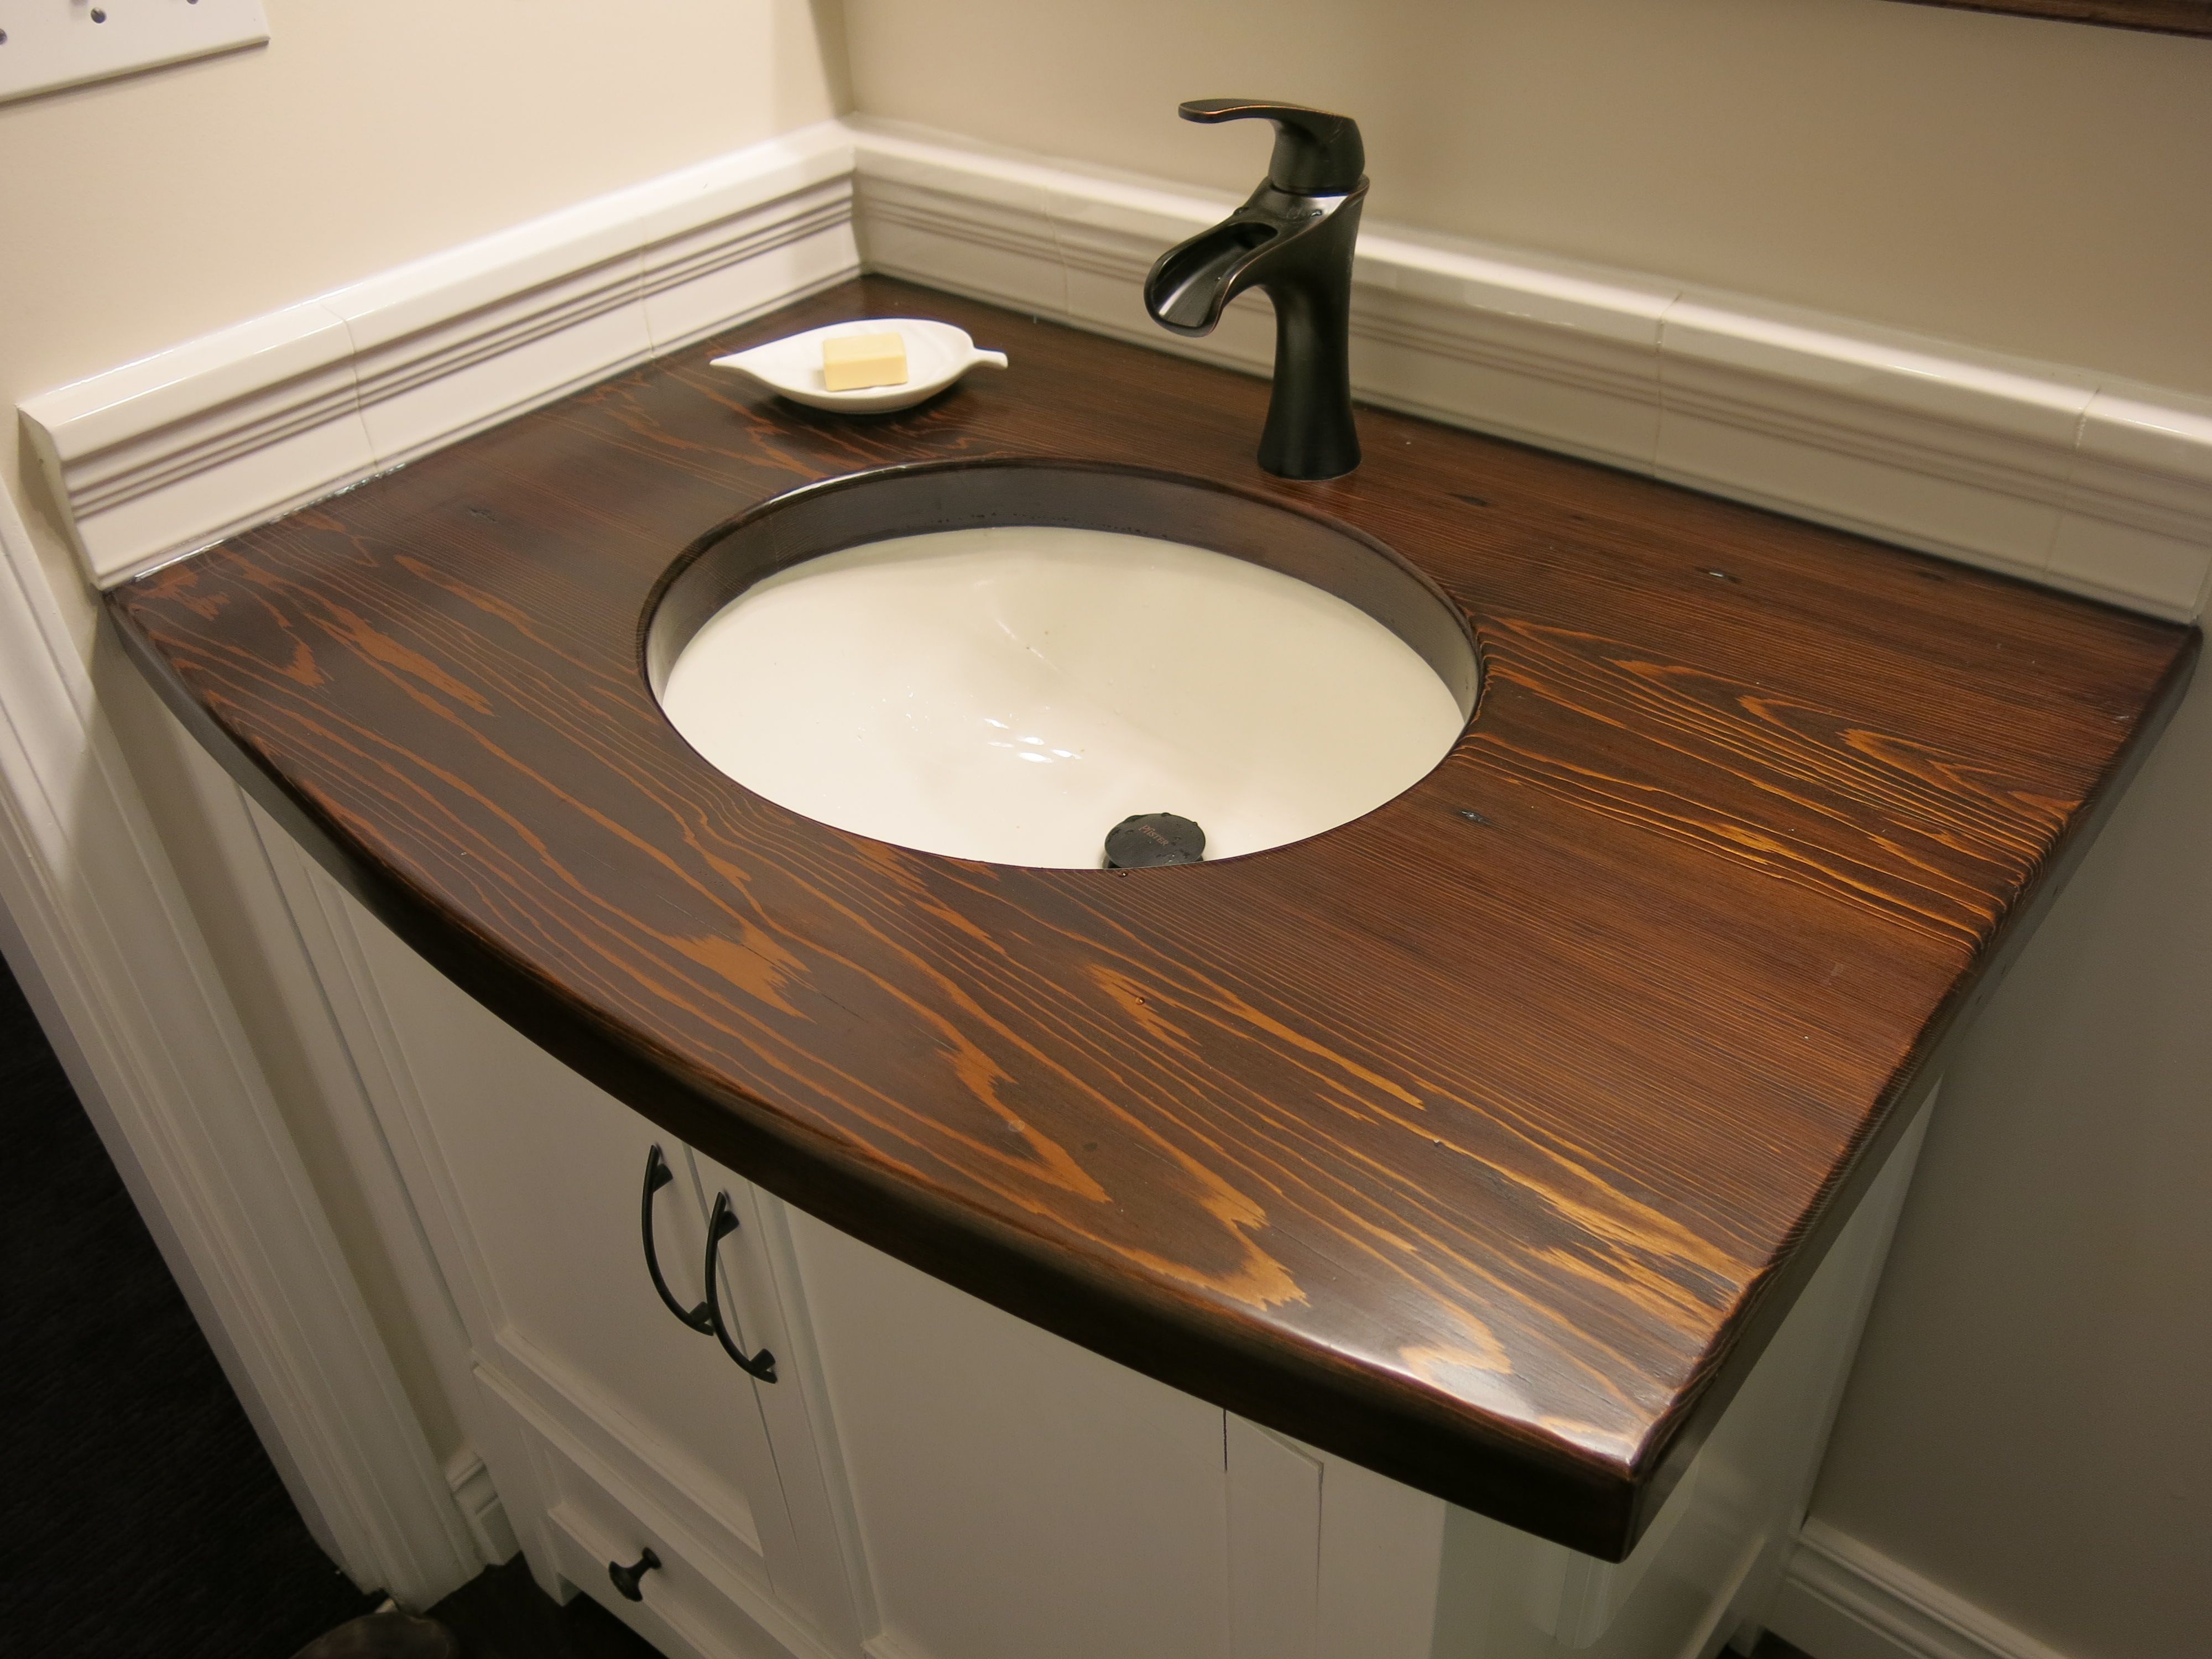 Wooden Bathroom Sink Cabinet Countertop Oil Rubbed Bronze Faucet, Undermount  Sink, Curved Counter,